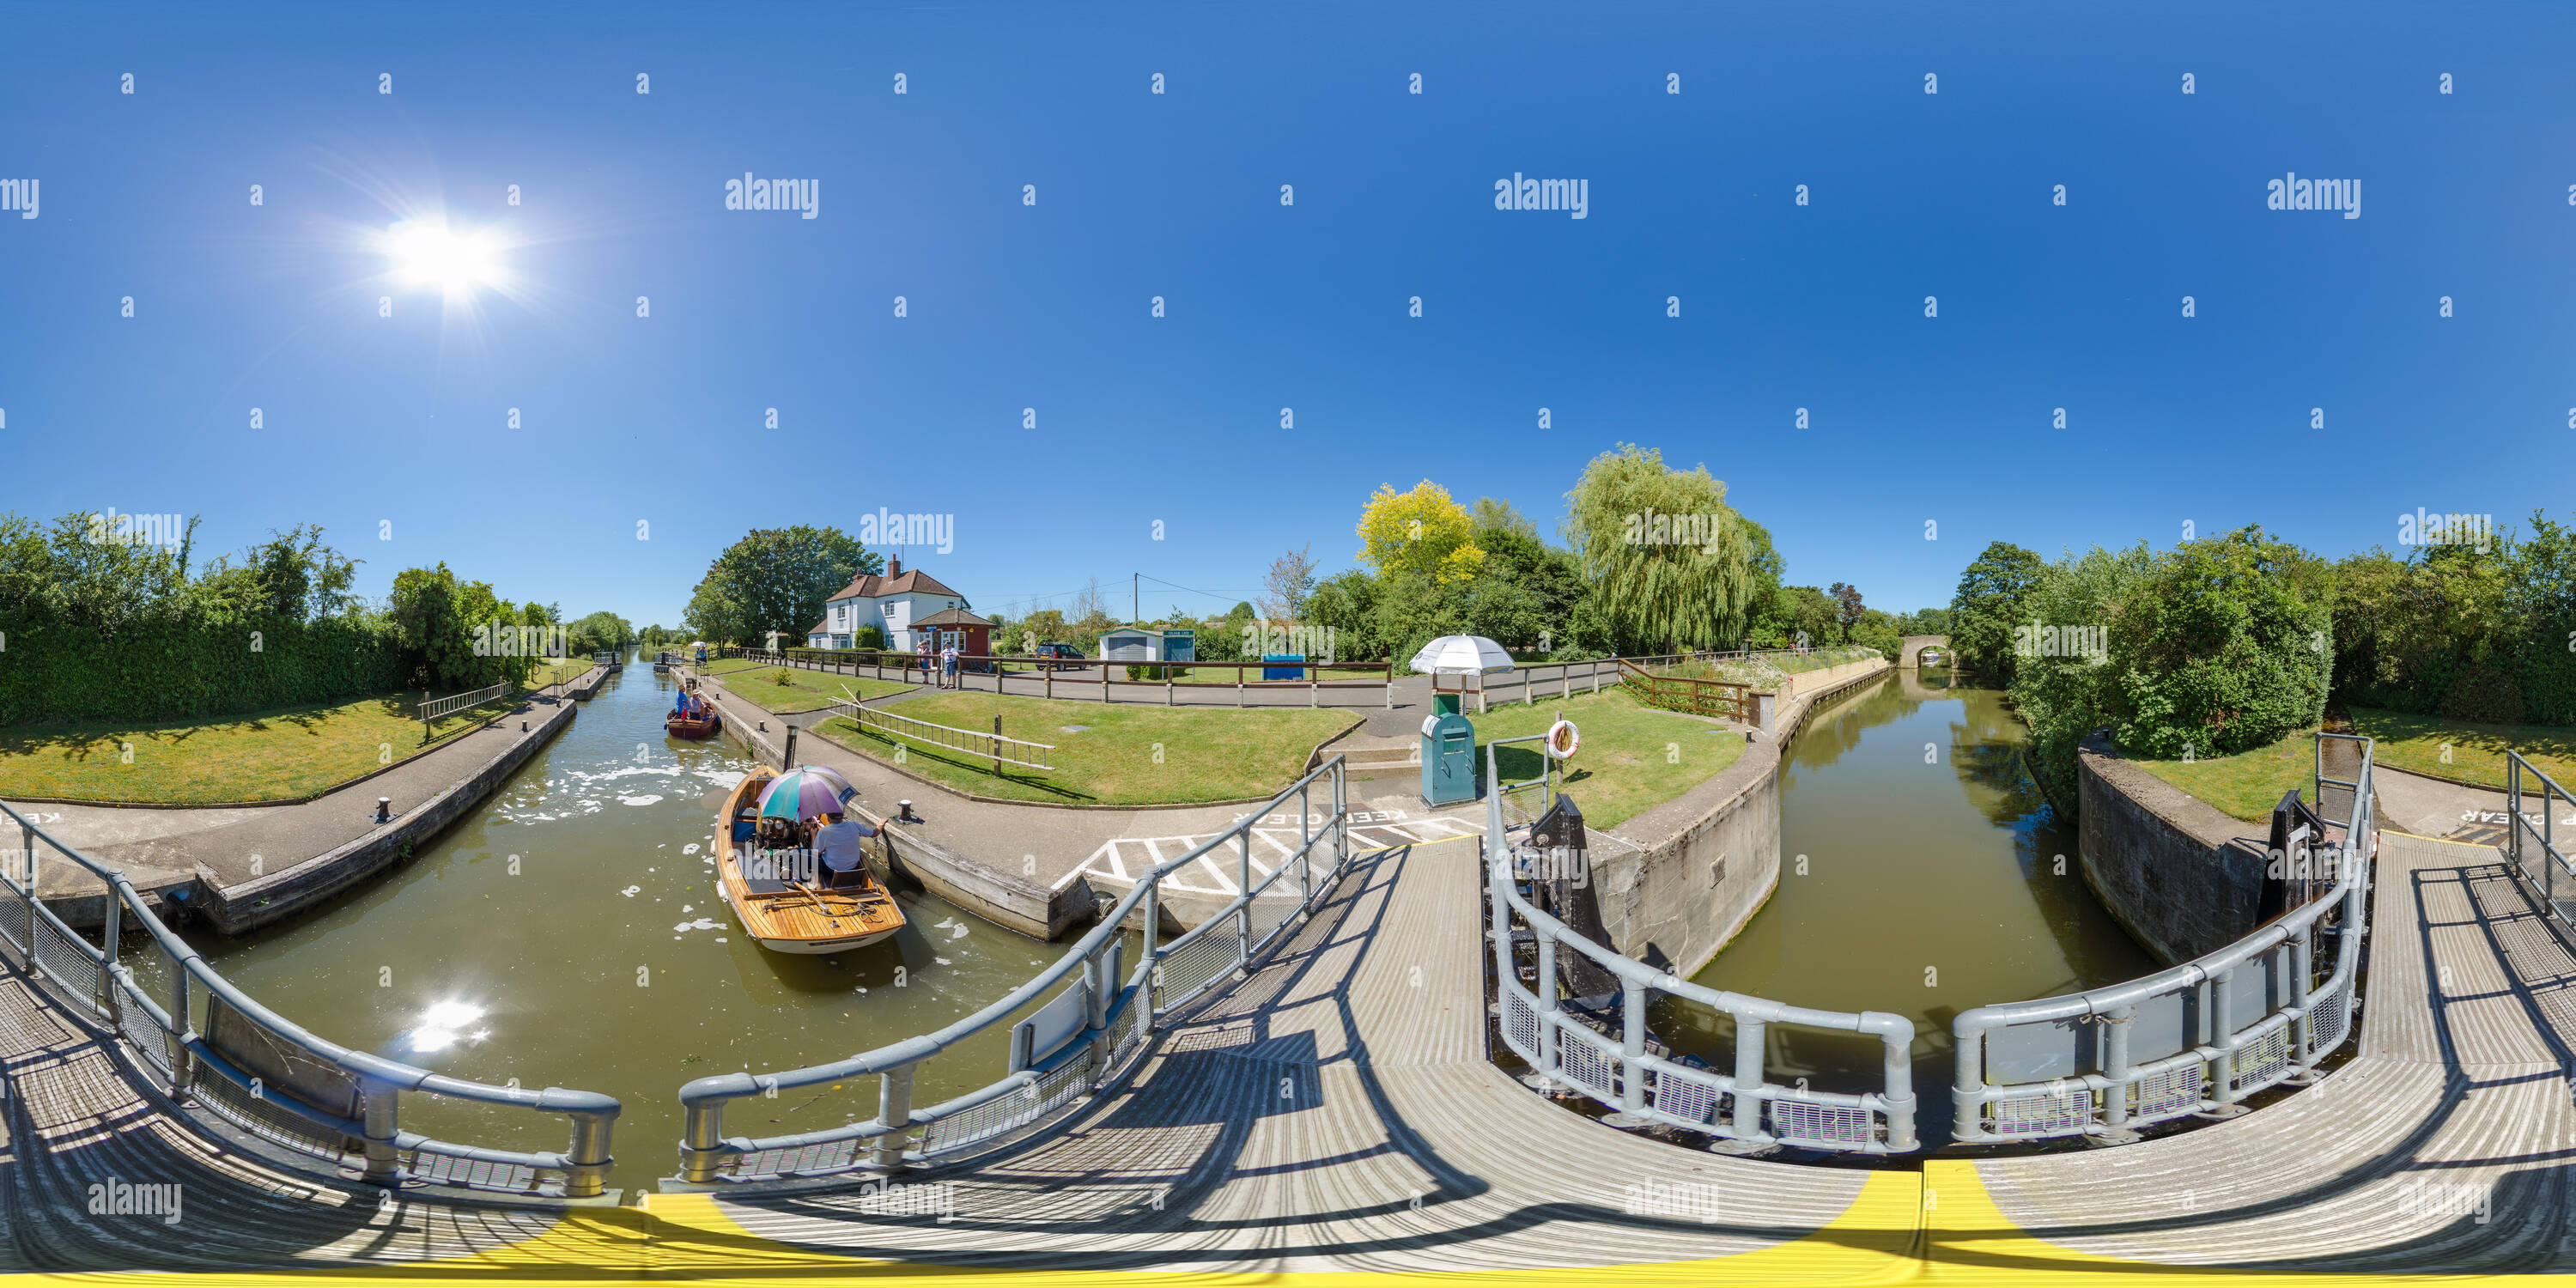 Culham lock, River Thames, Oxfordshire, UK - Stock Image